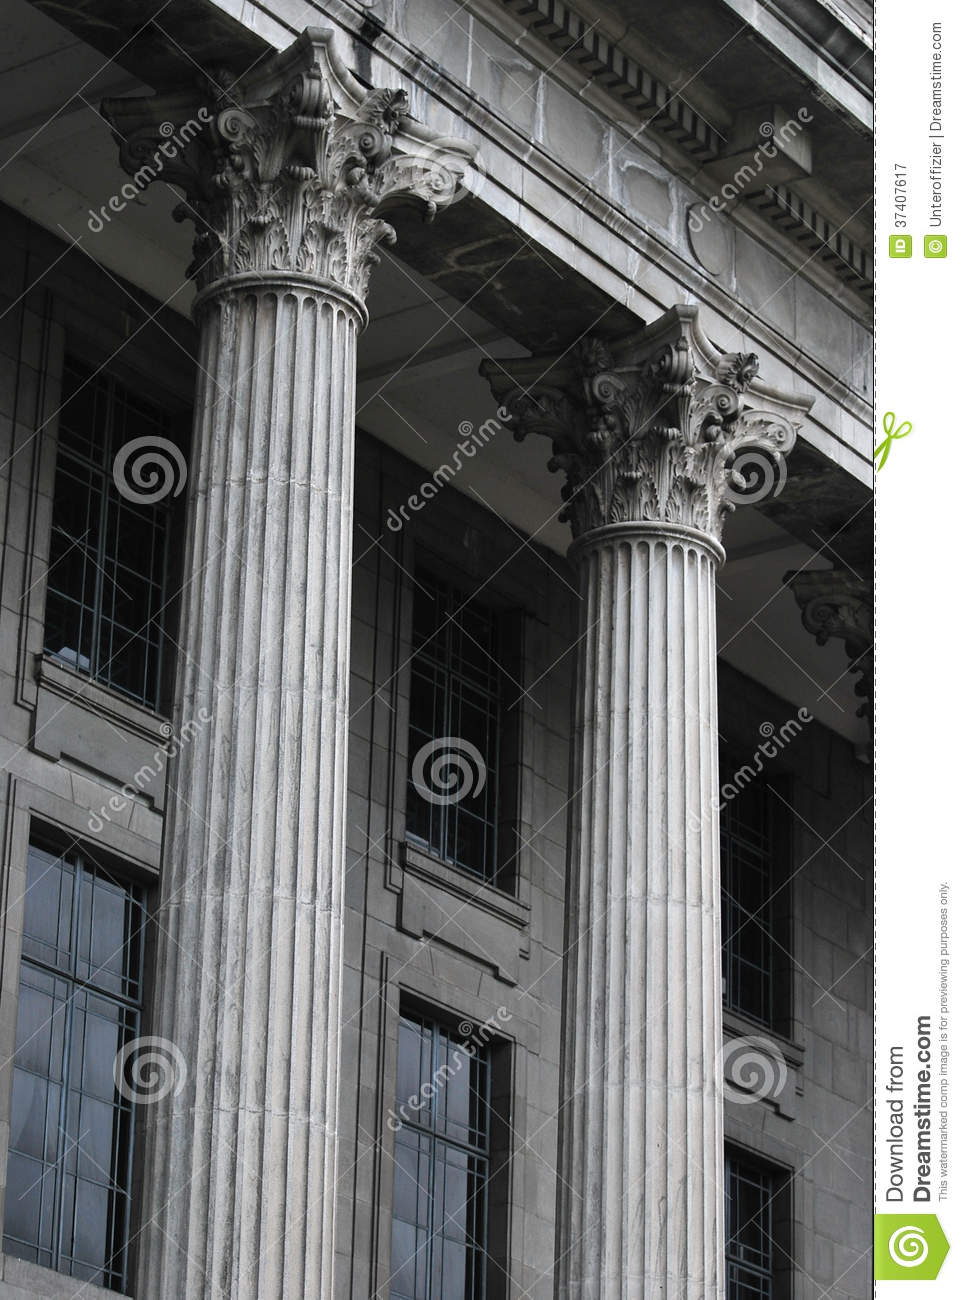 Building A House On Pillars : Building pillars royalty free stock photography image